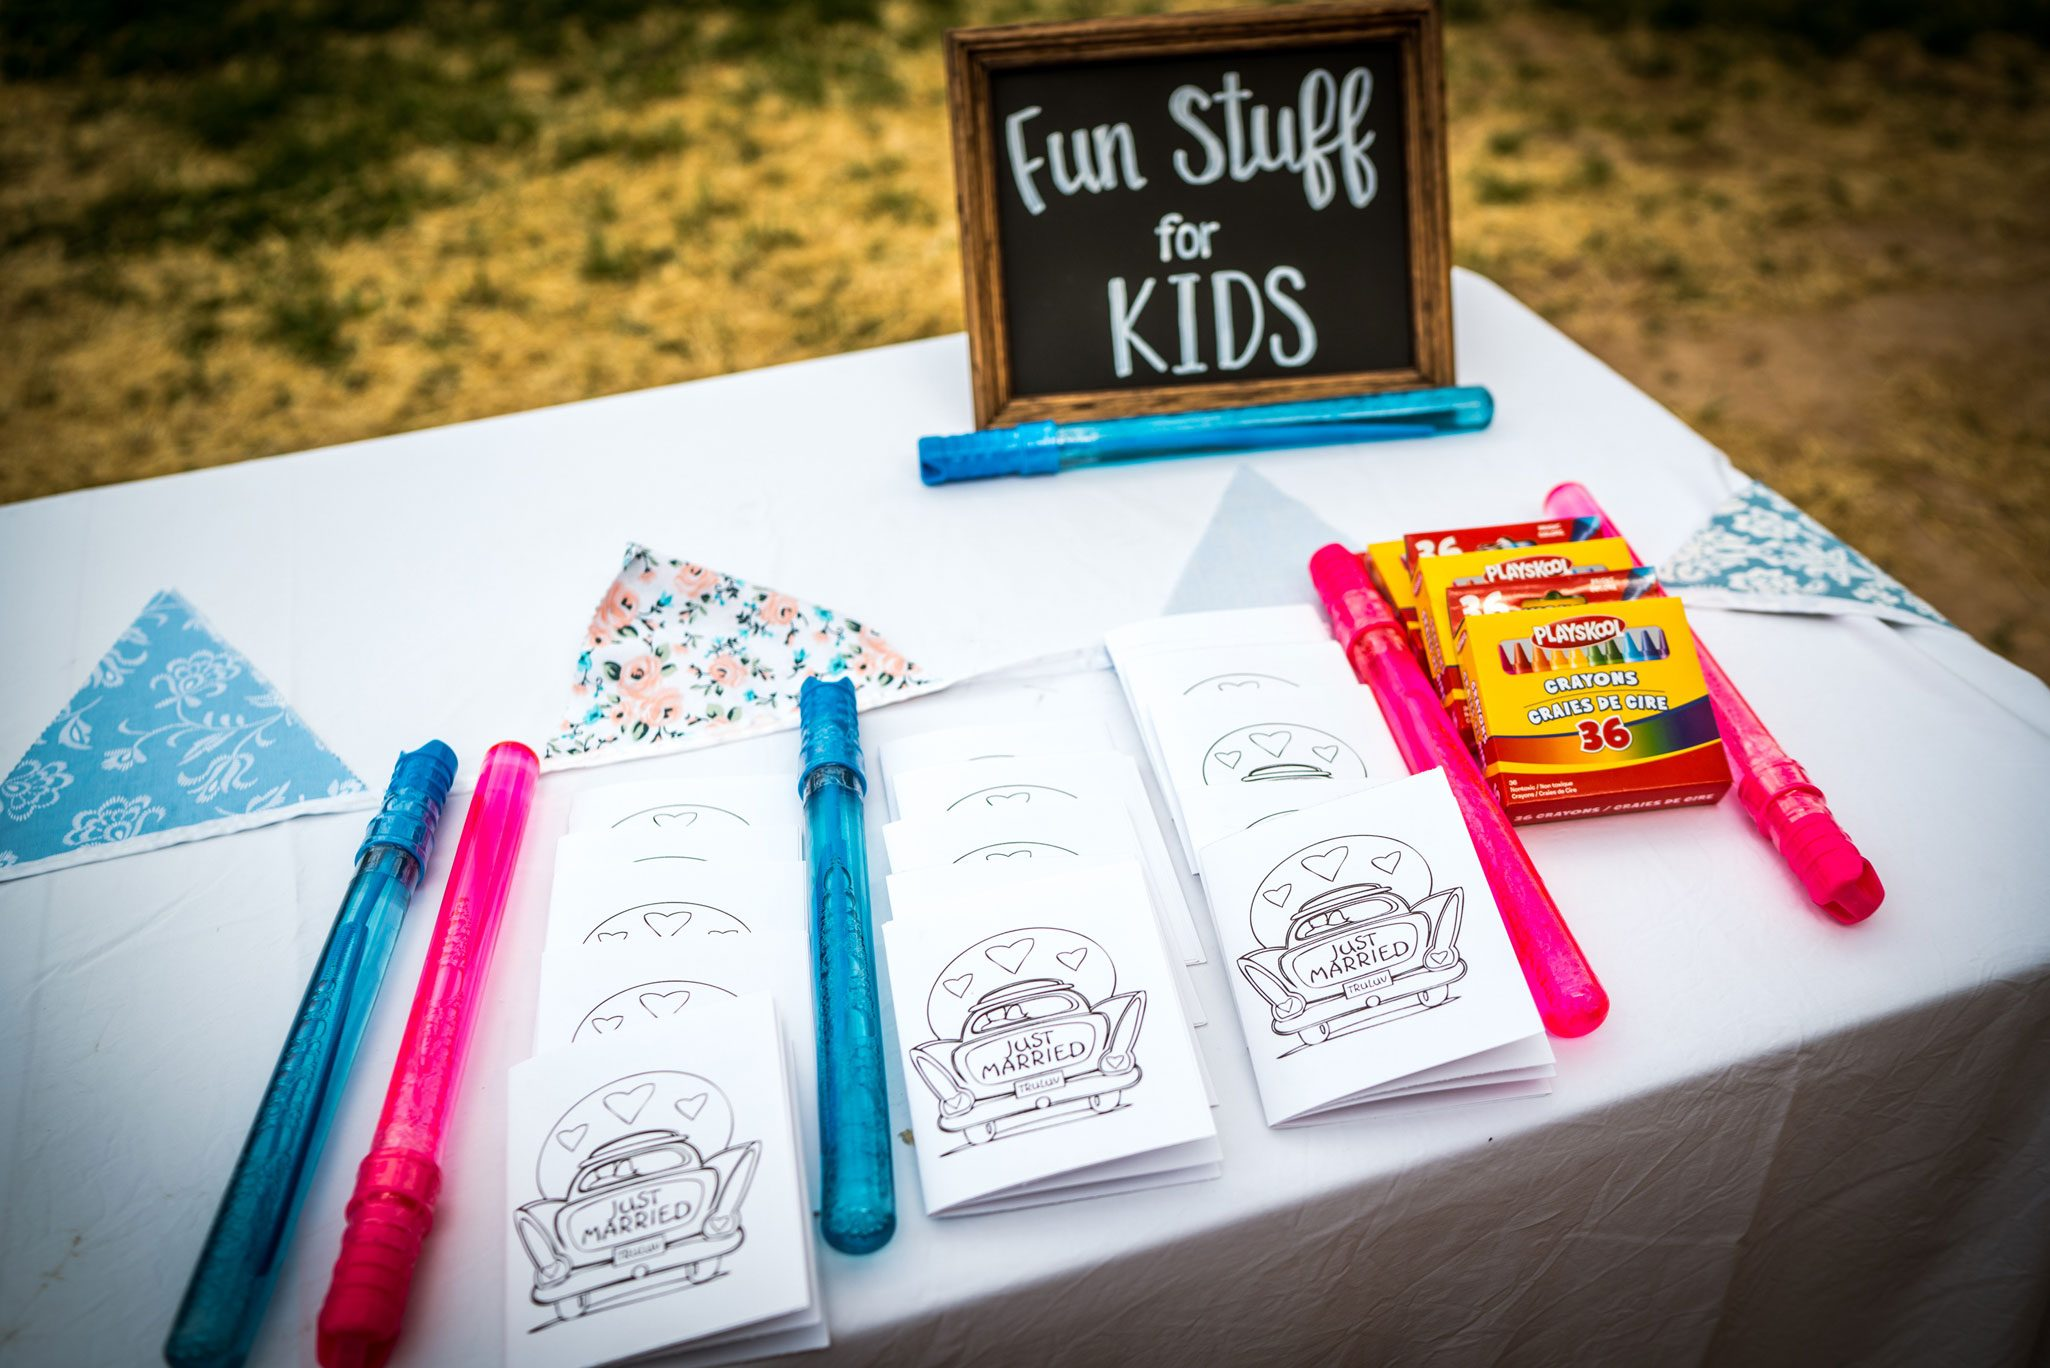 Kids Table | Weddings at River Bend Ranch, Durango